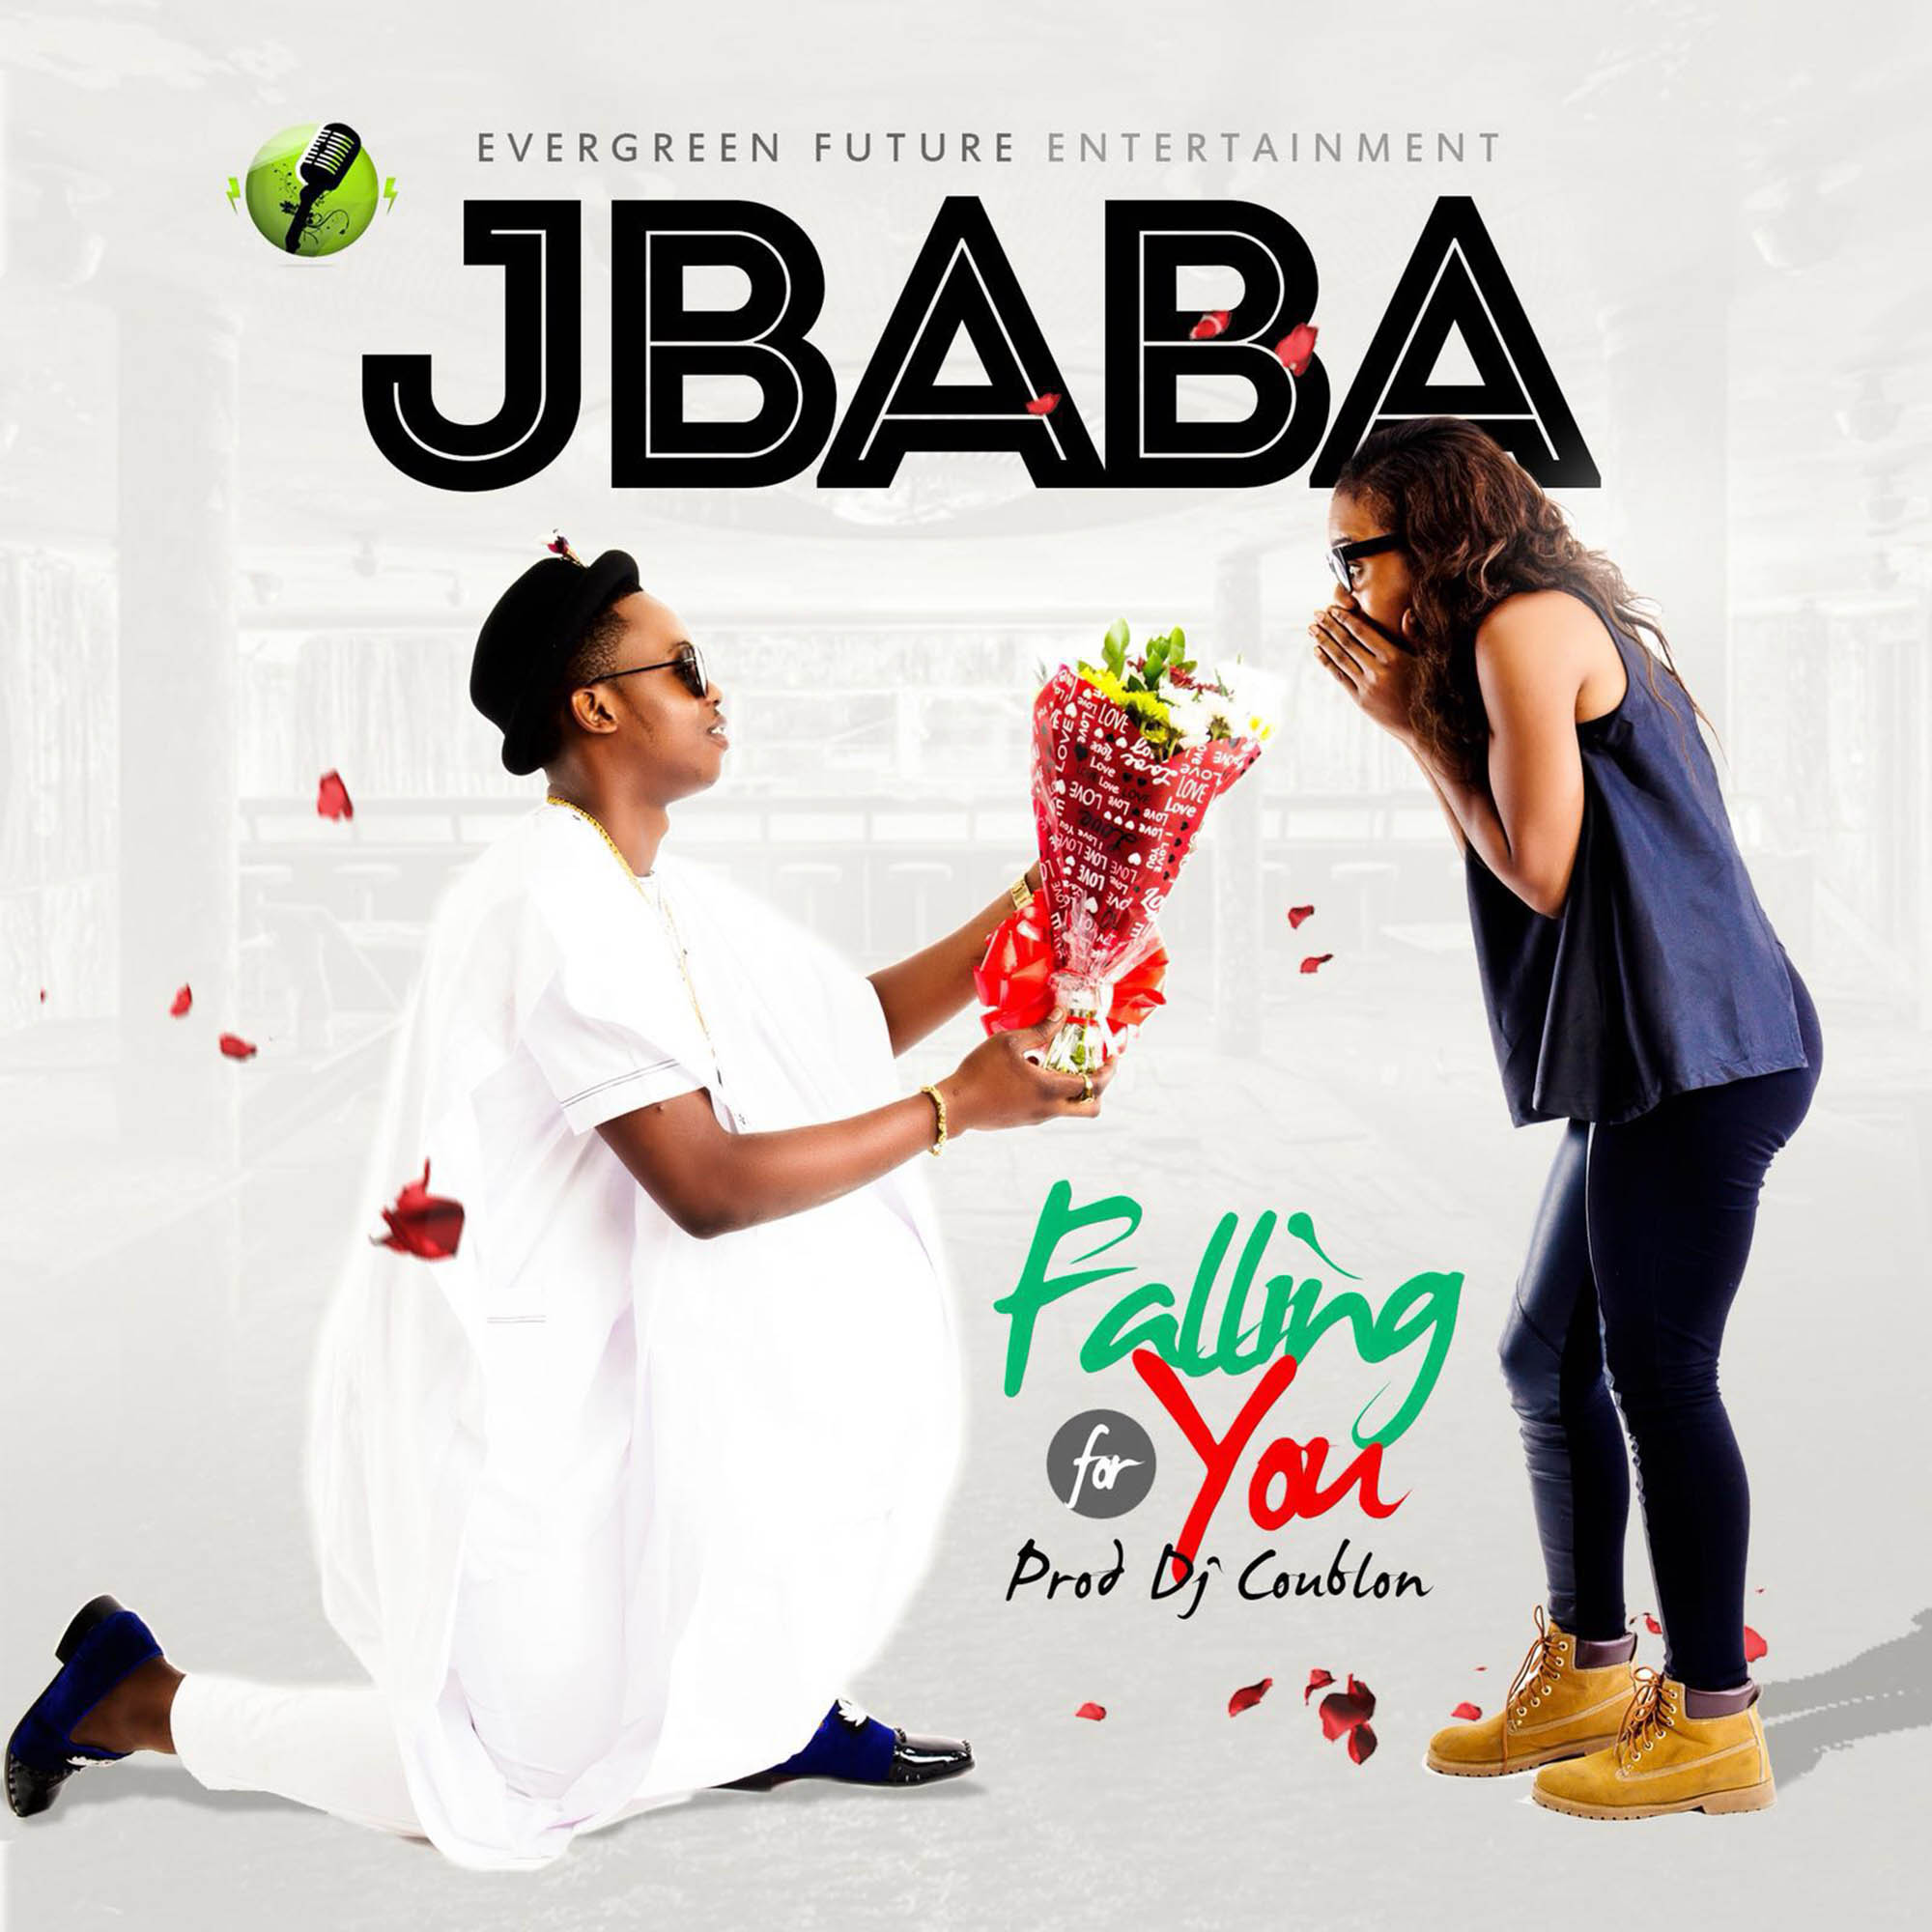 J-Baba - Falling For You (Prod. by DJ Coublon)